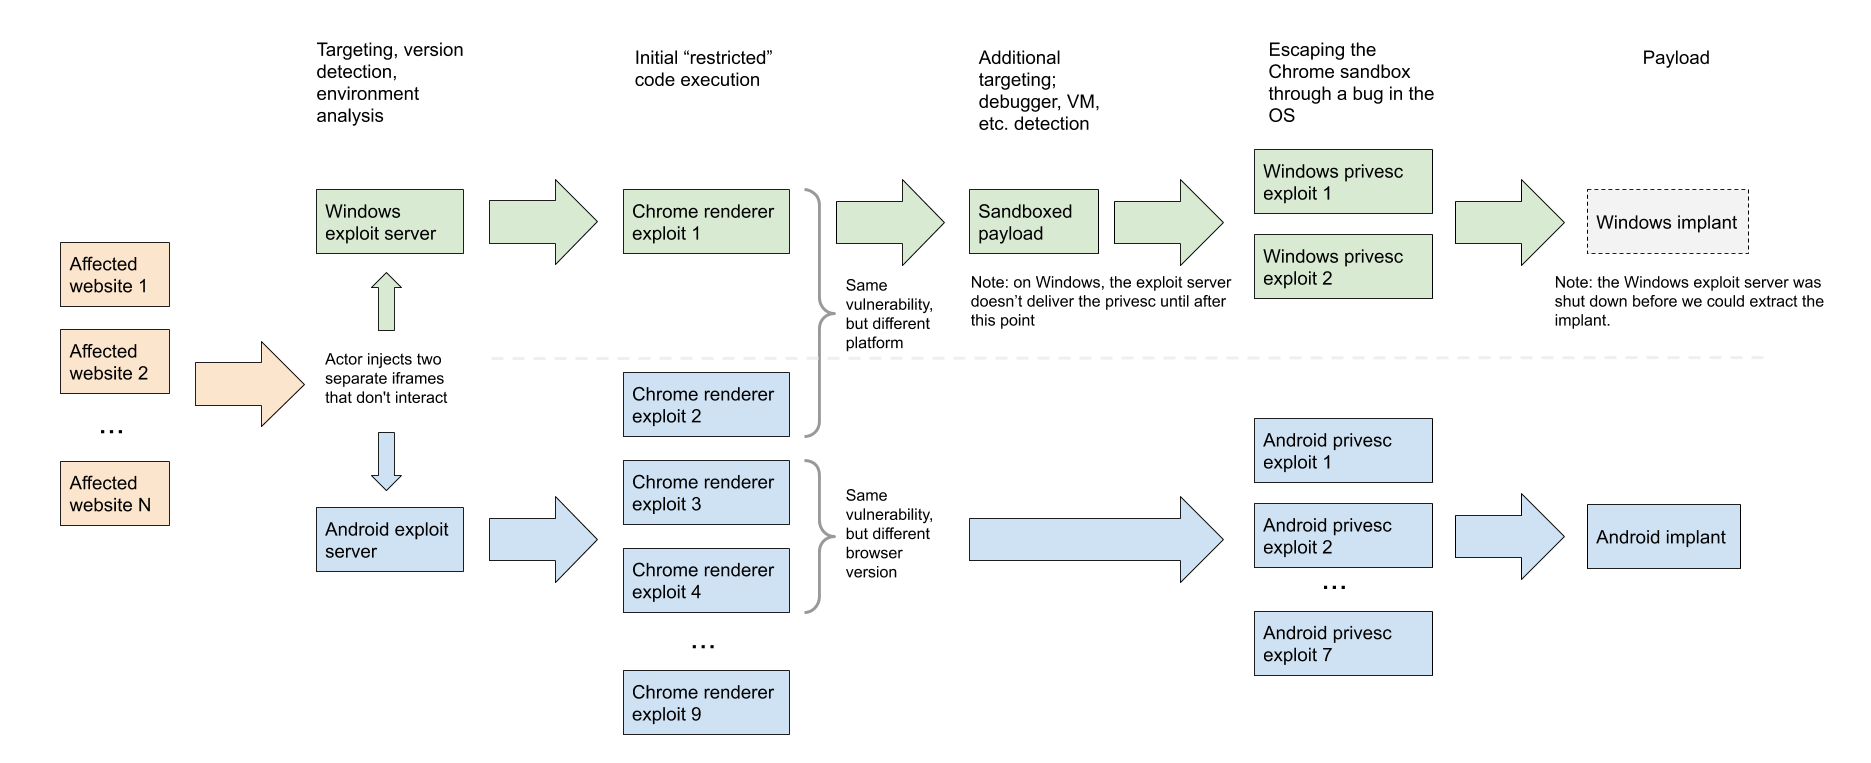 Flowchart showing the exploit chain from affected websites, to exploit servers, to Chrome renderers, to Android or Windows privesc, and finally implants.